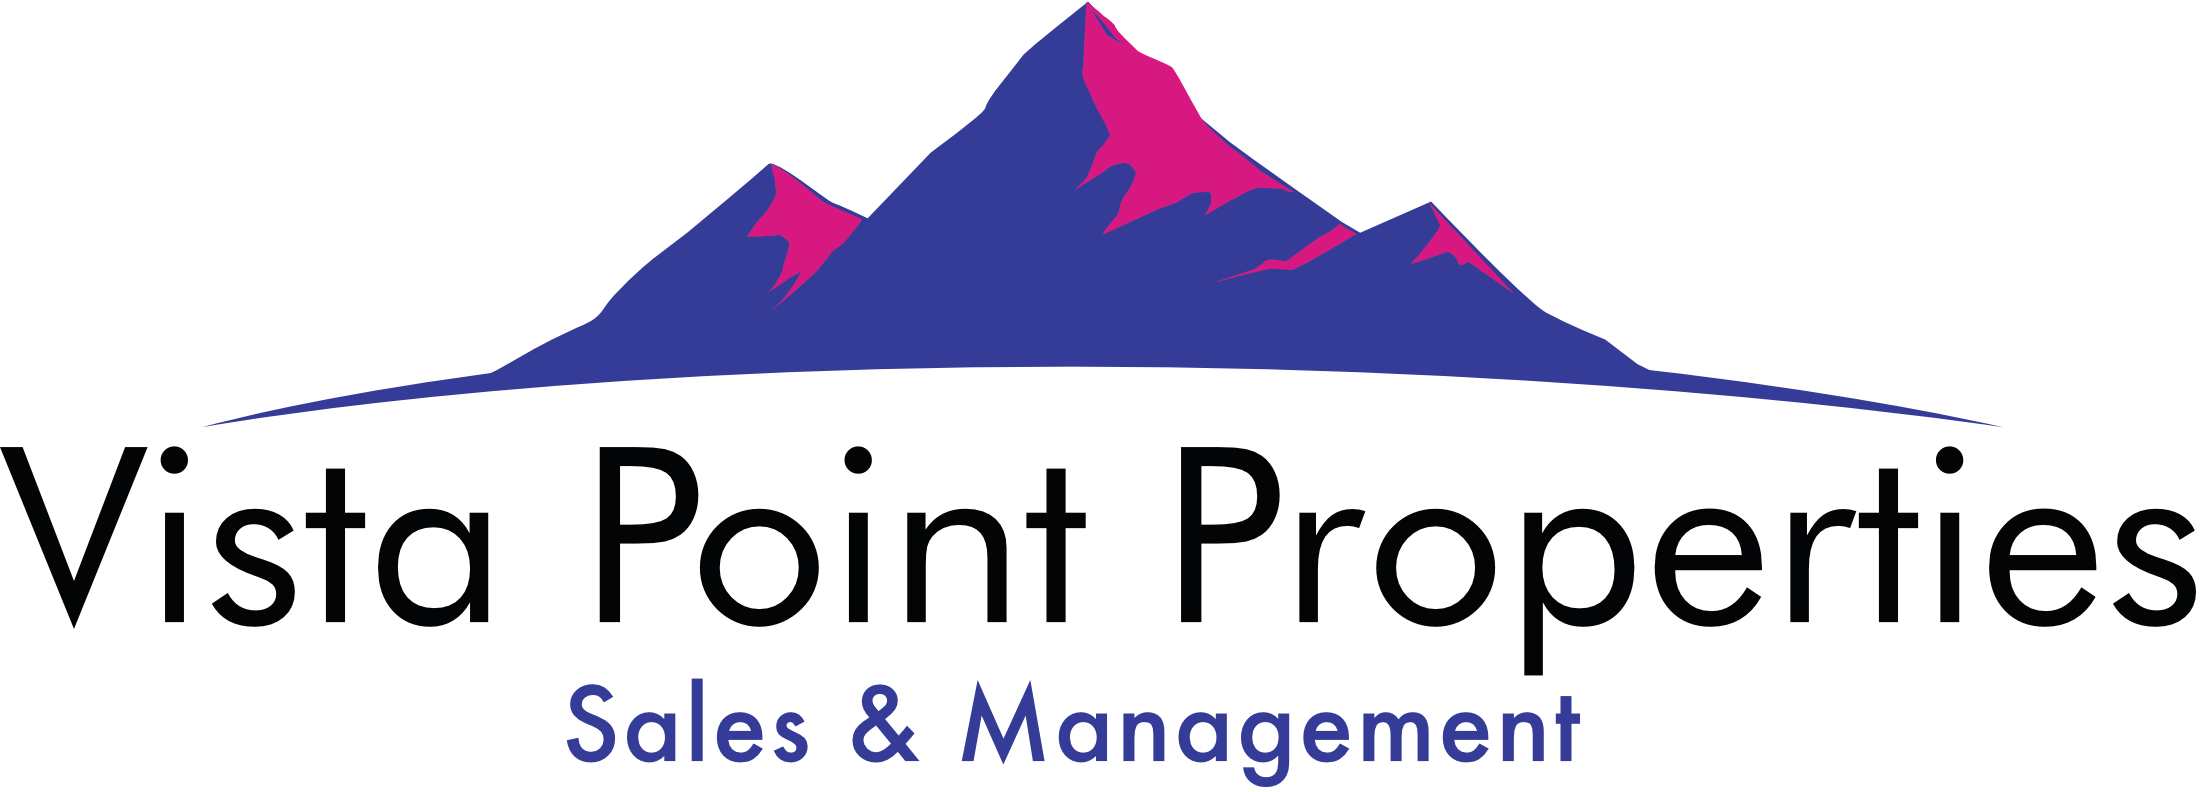 Vista Point Properties |